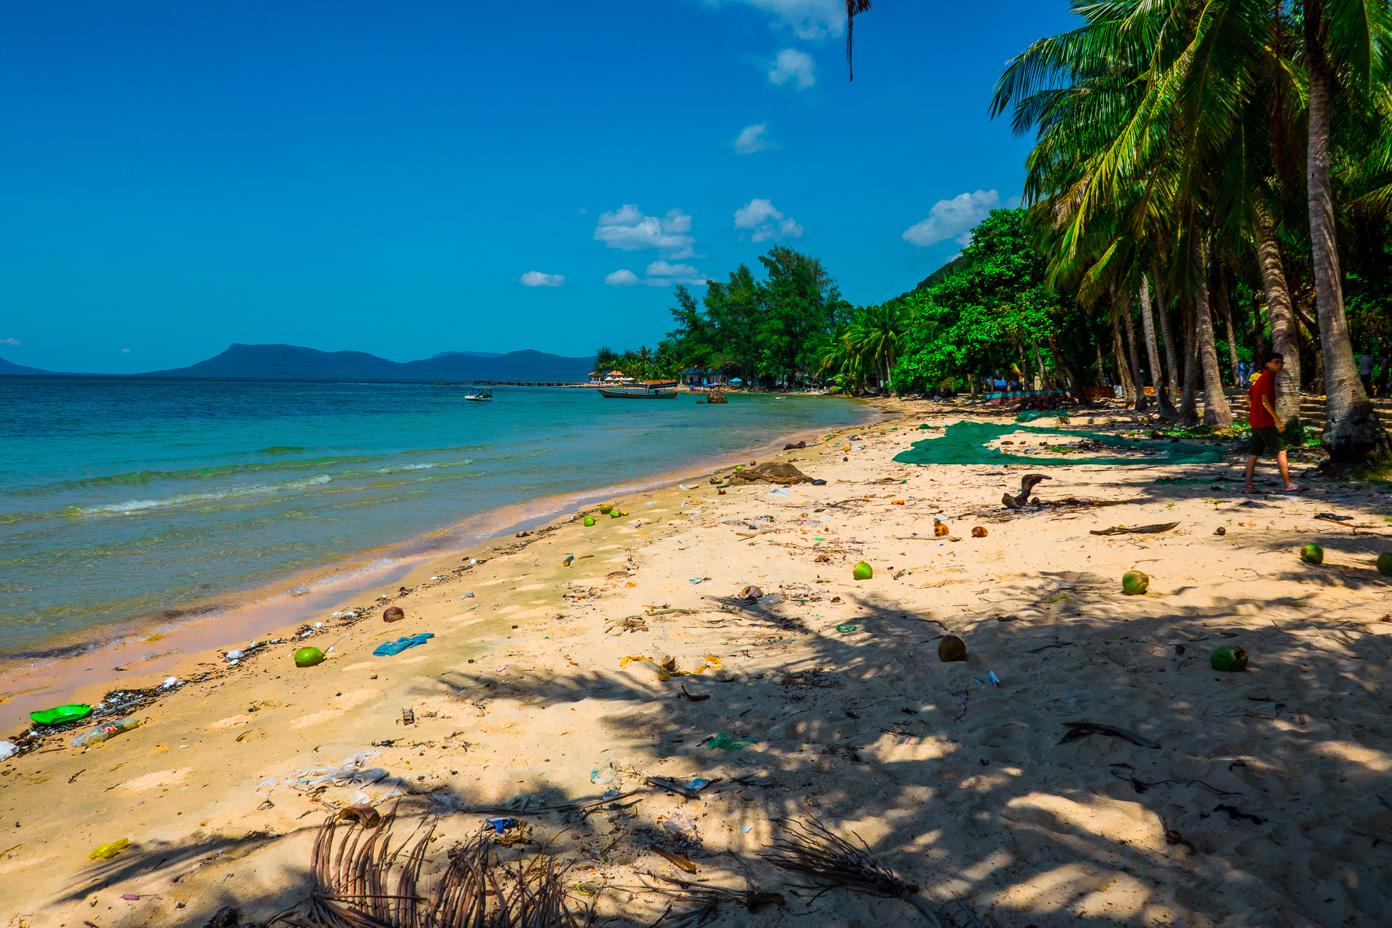 Ganh Dau Beach - The disappointment Definitely not one of the nicest beaches on Phu Quoc